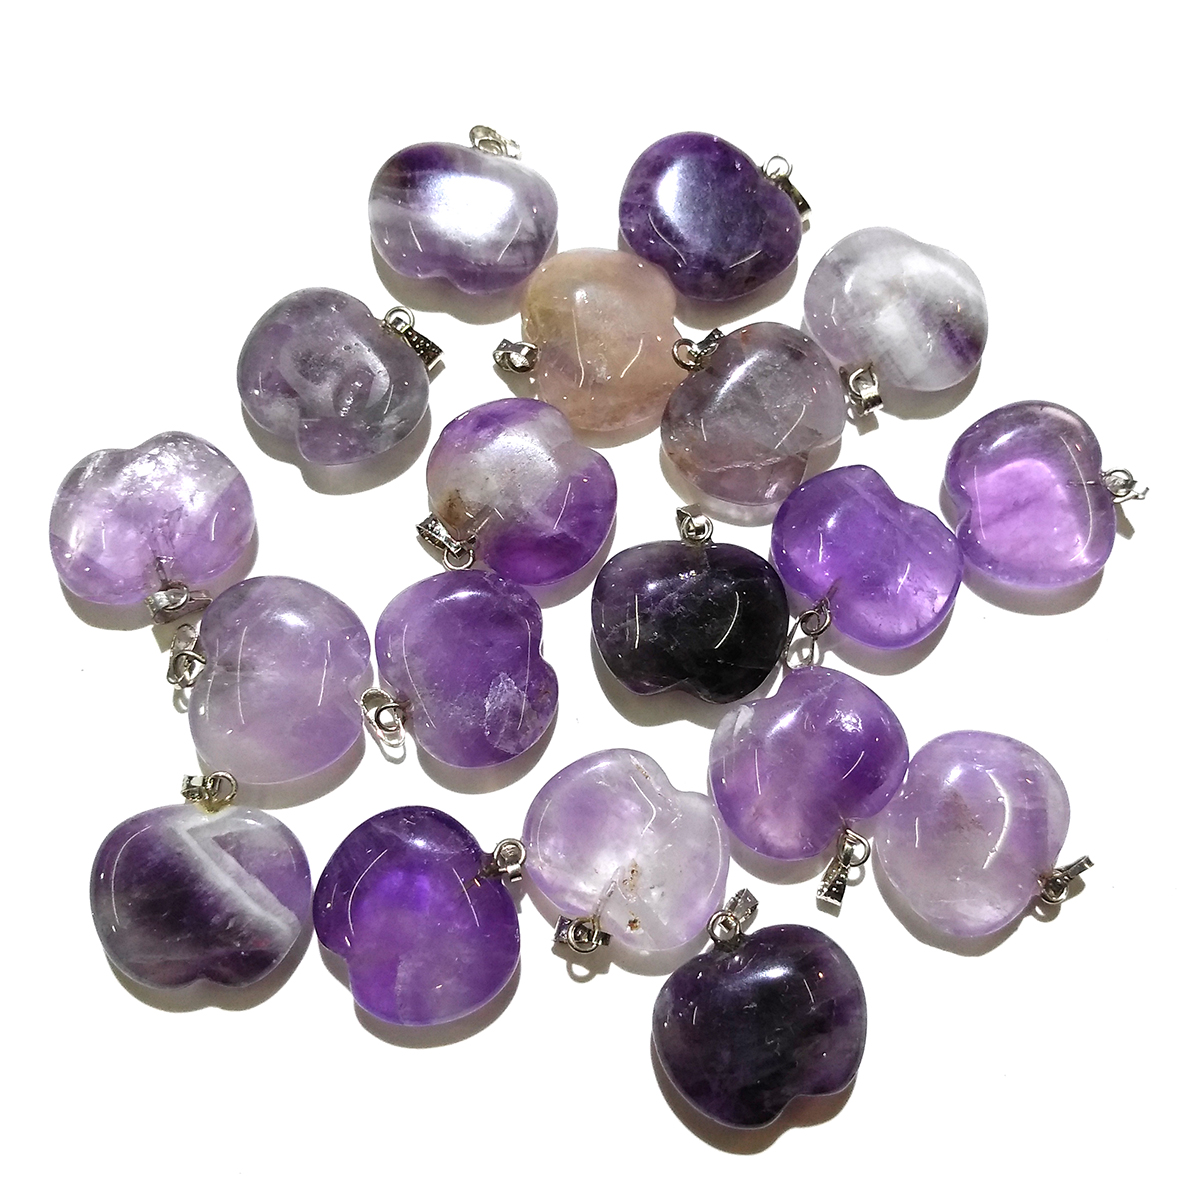 Wholesale 10 PSC Natural Amethysts Pendants Charm Lucky Stone Crystal Pendant for Jewelry Making Necklace or Bracelets for Women in Pendants from Jewelry Accessories